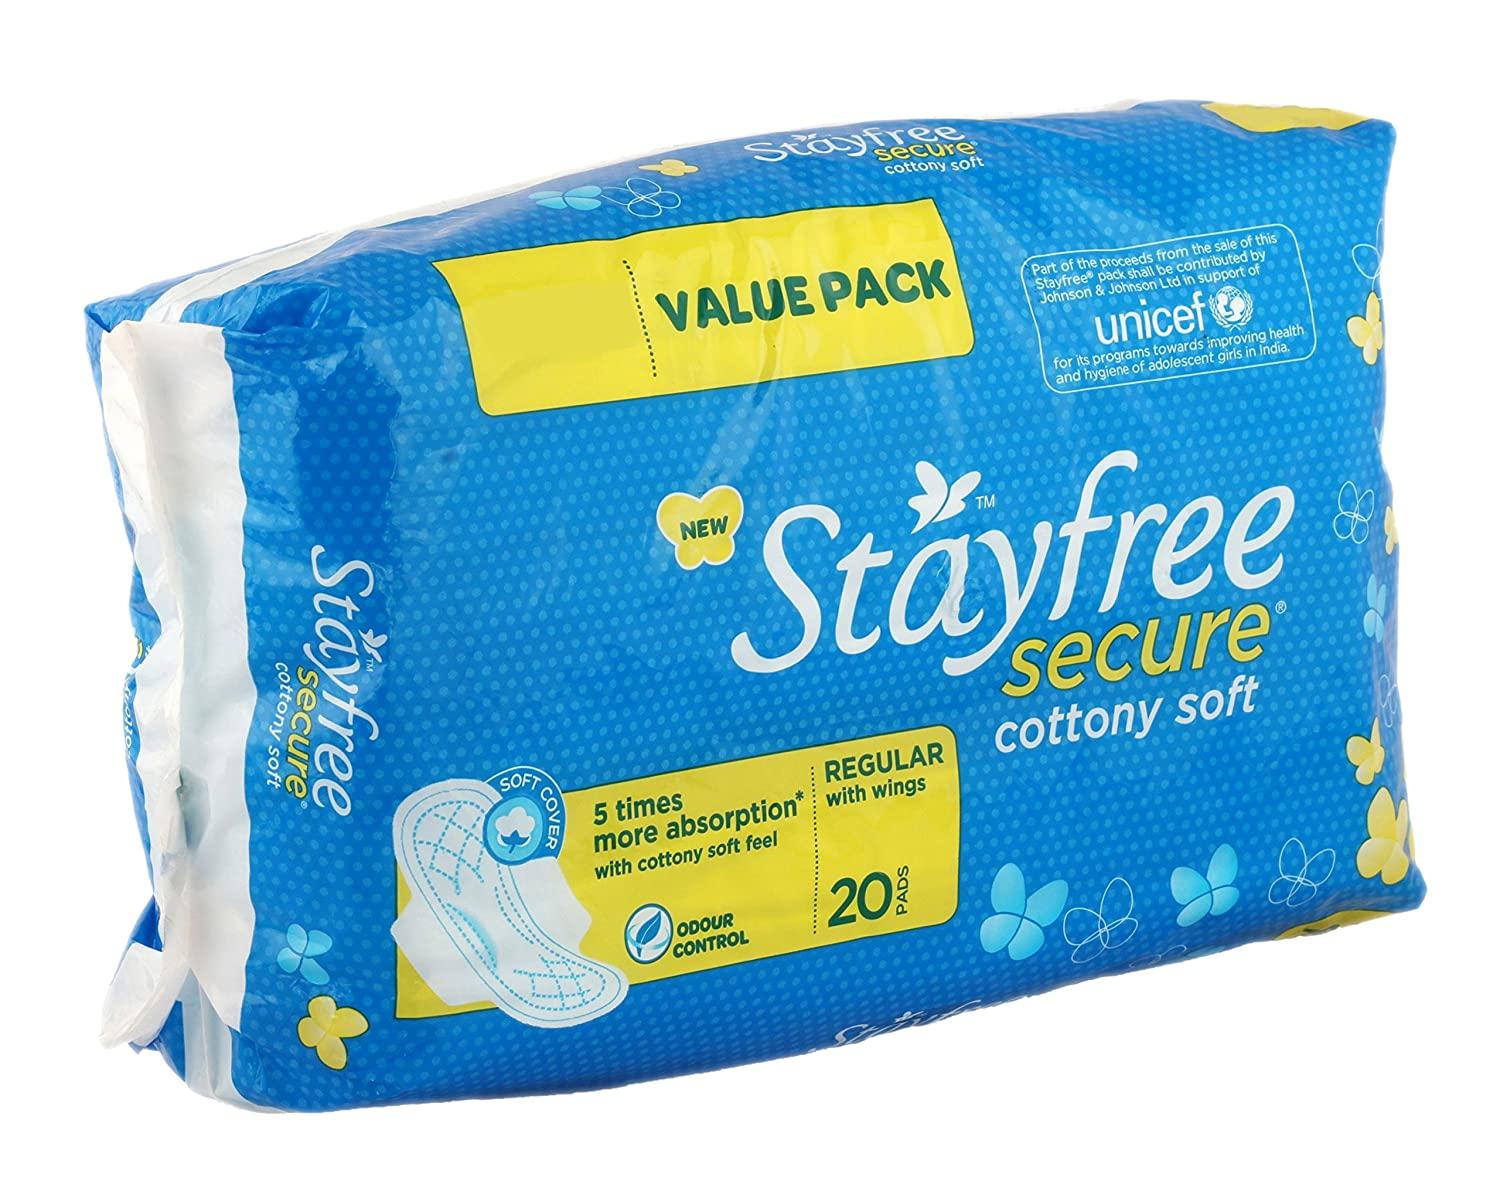 Stayfree Secure Cottony Sanitary Napkins with Wings (20 Count)